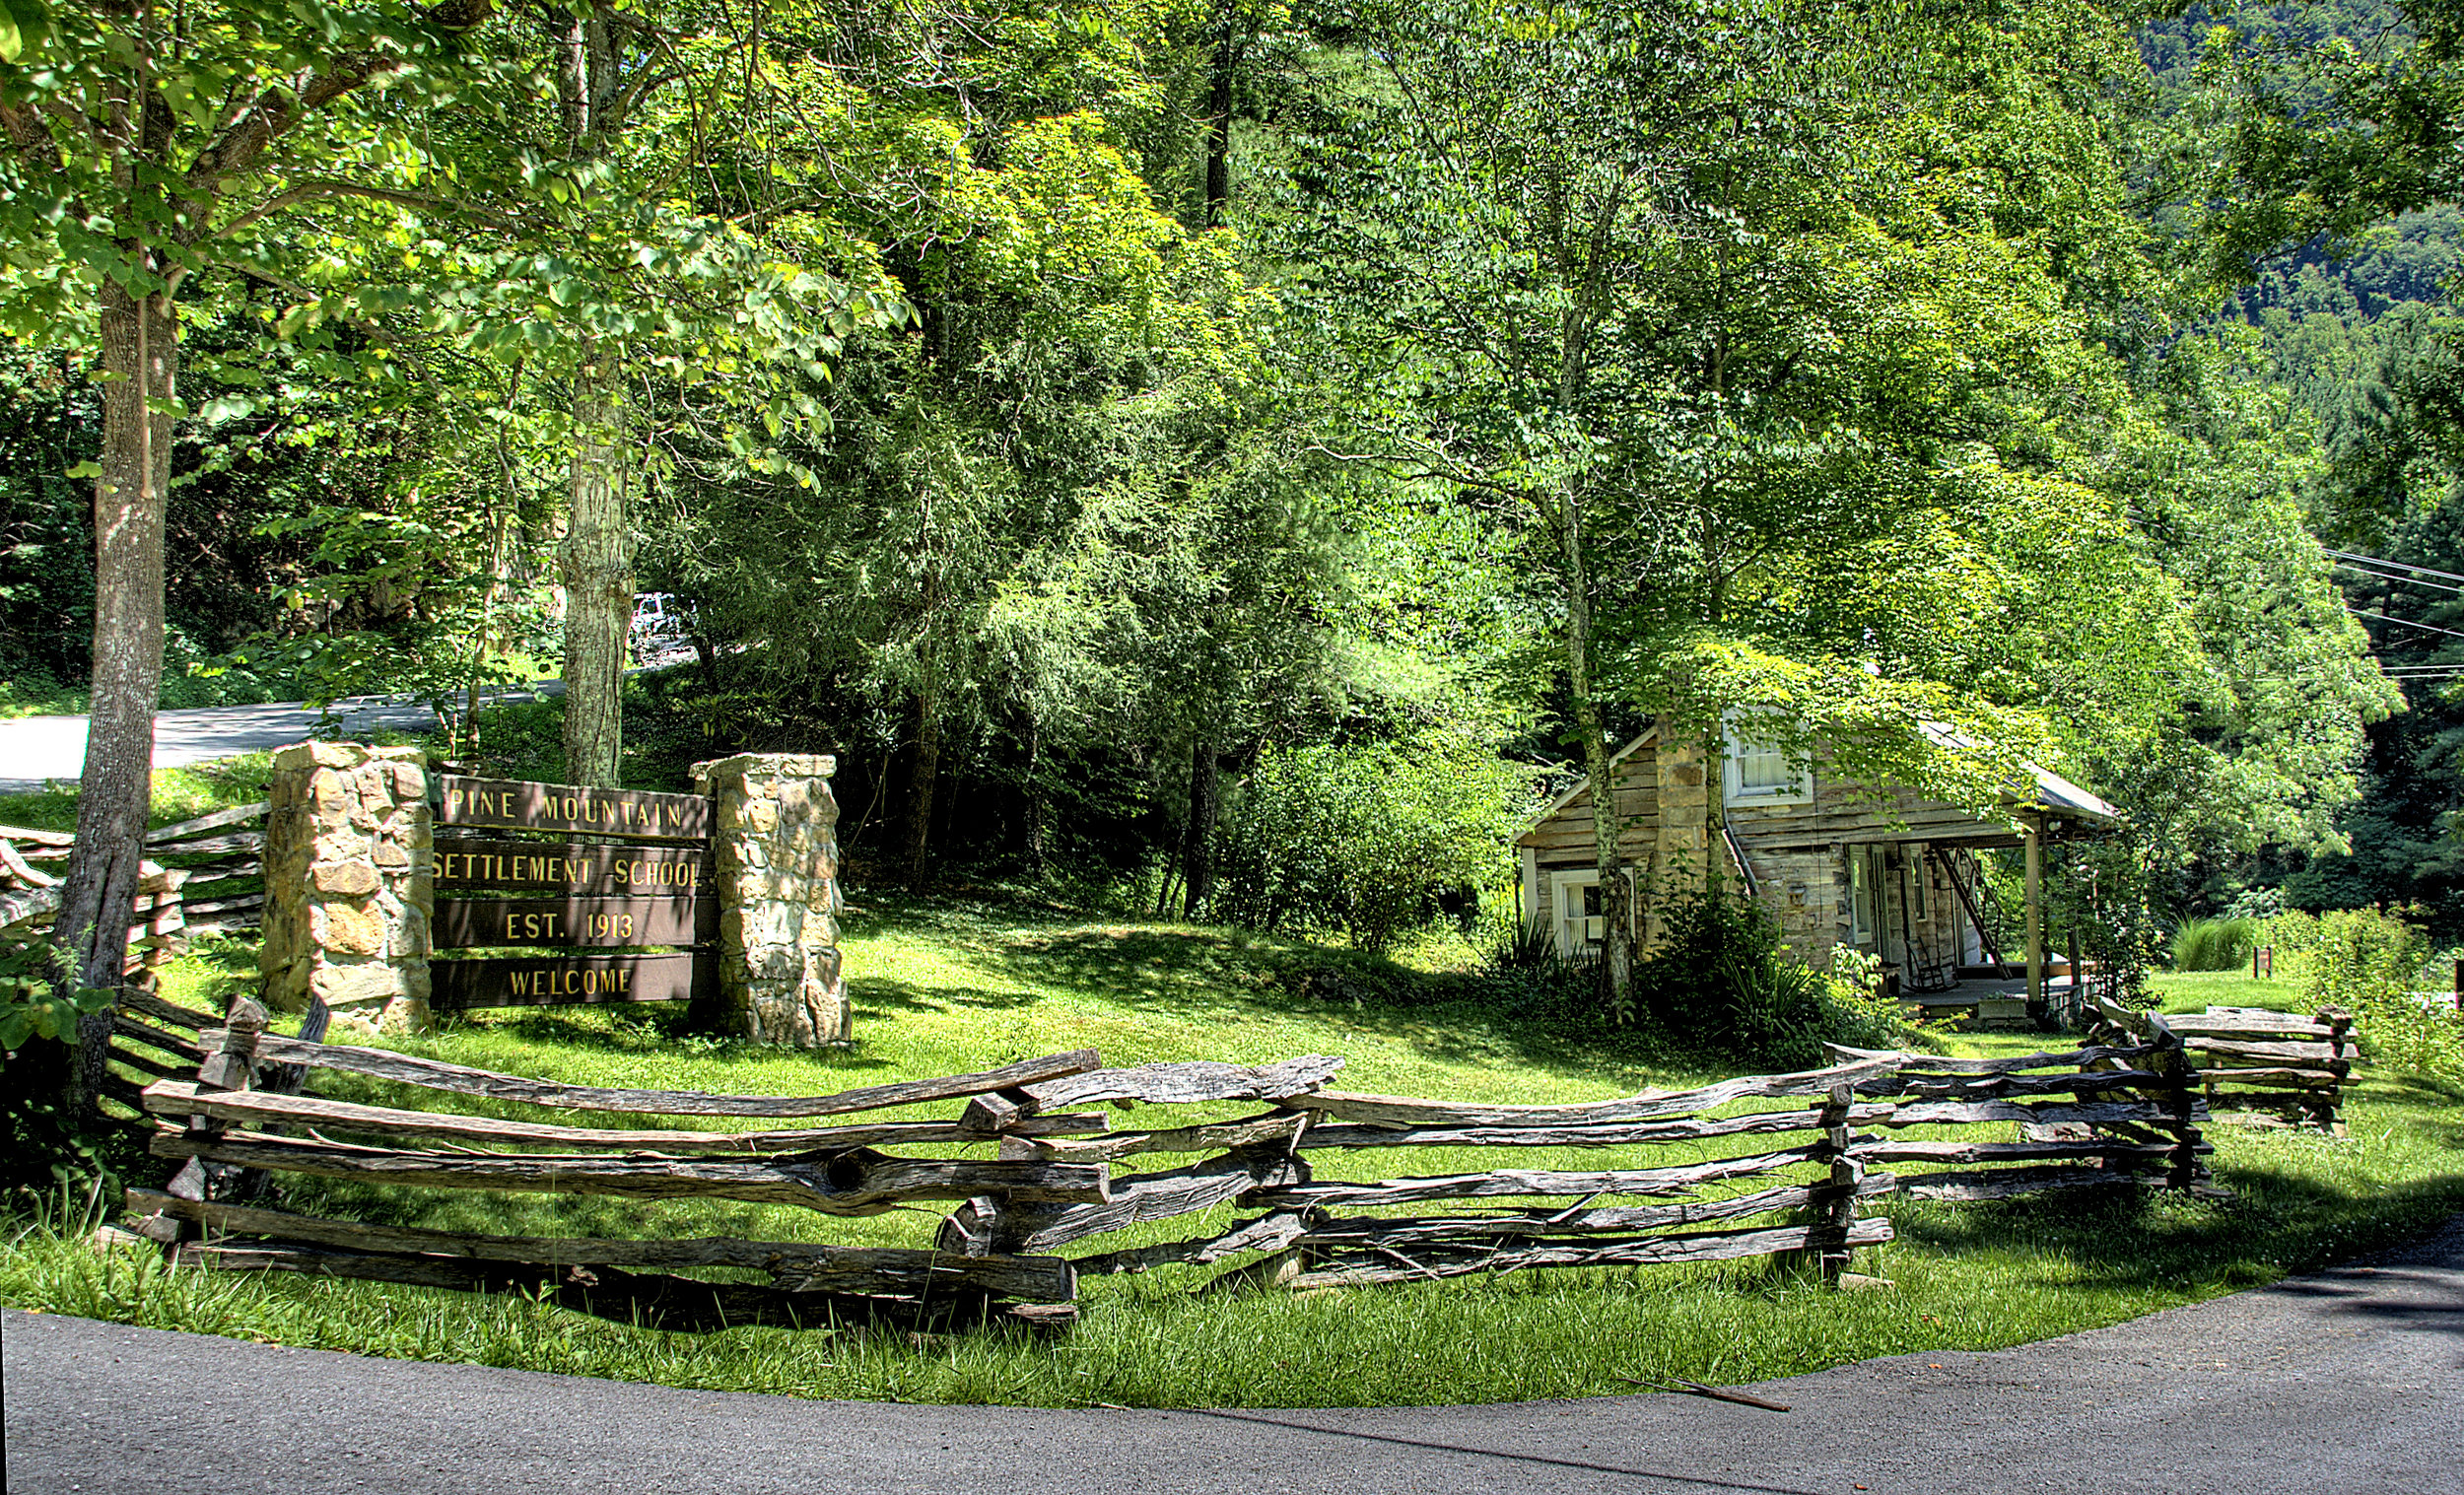 Pine Mountain Settlement School - Harlan CountyIn the heart of Kentucky's coalfields, Pine Mountain Settlement School is reigniting a vision so old it is new again. Visit, support, and advocate for the beautiful people, children, cultures, and wildlands of the Kentucky Mountains.